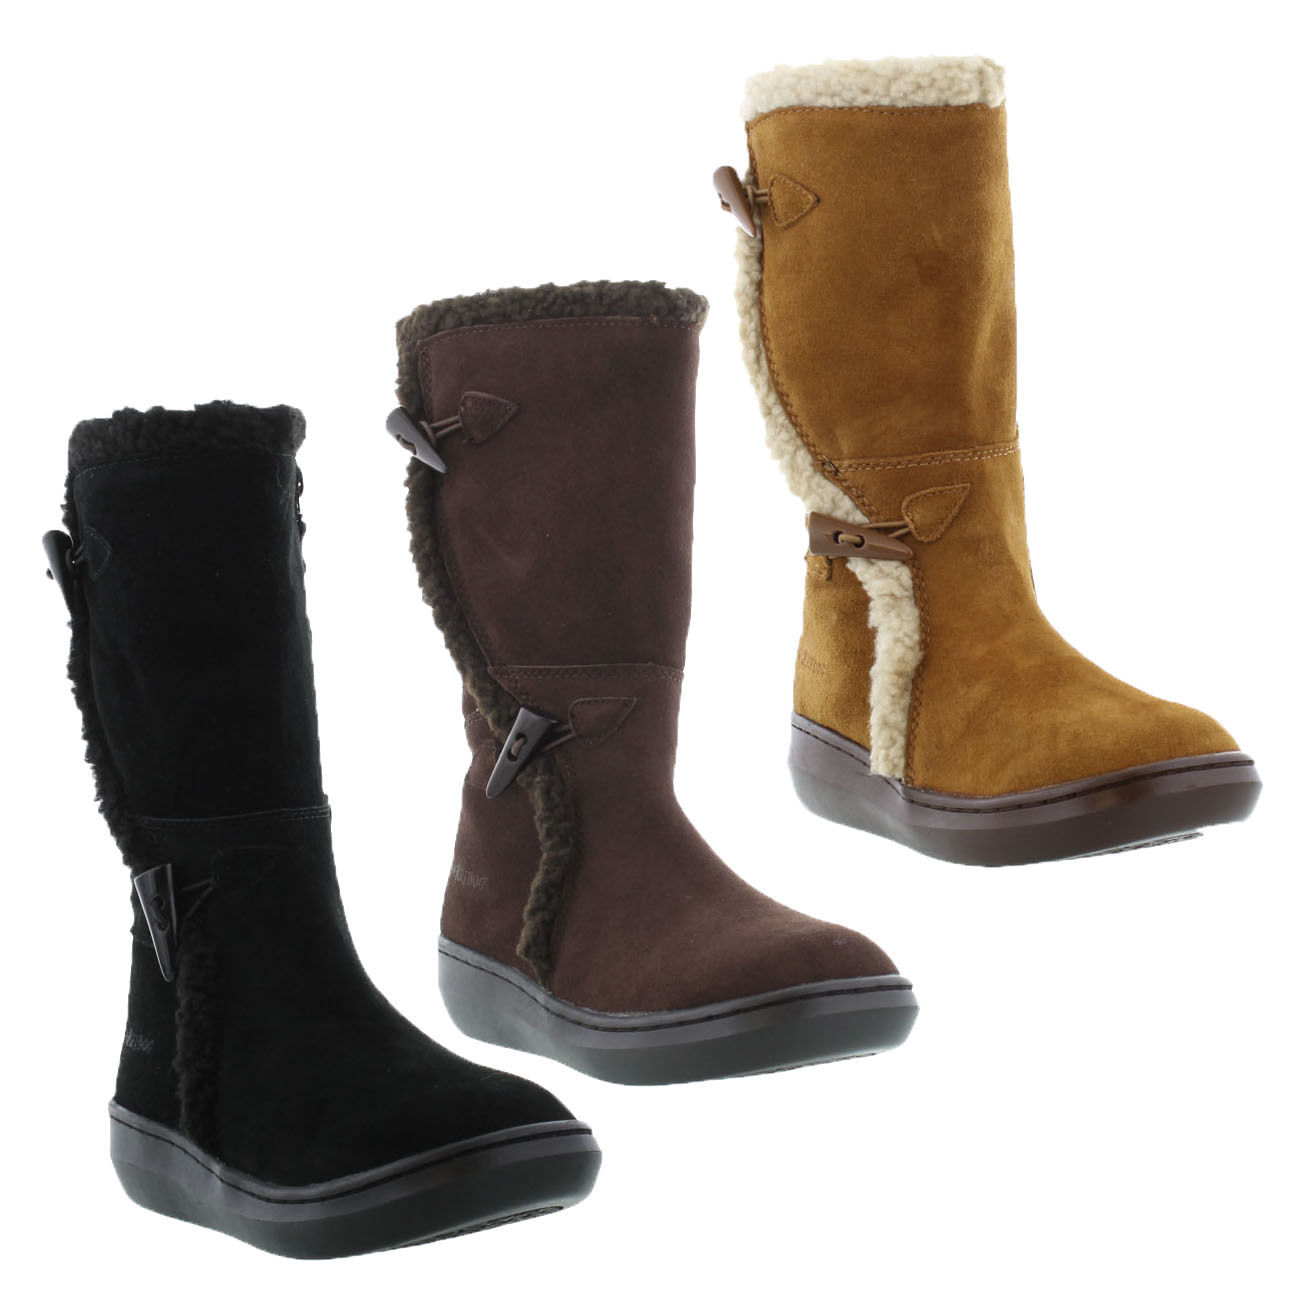 Slope, Boots femme - Beige (Chestnut), 37 EURocket Dog